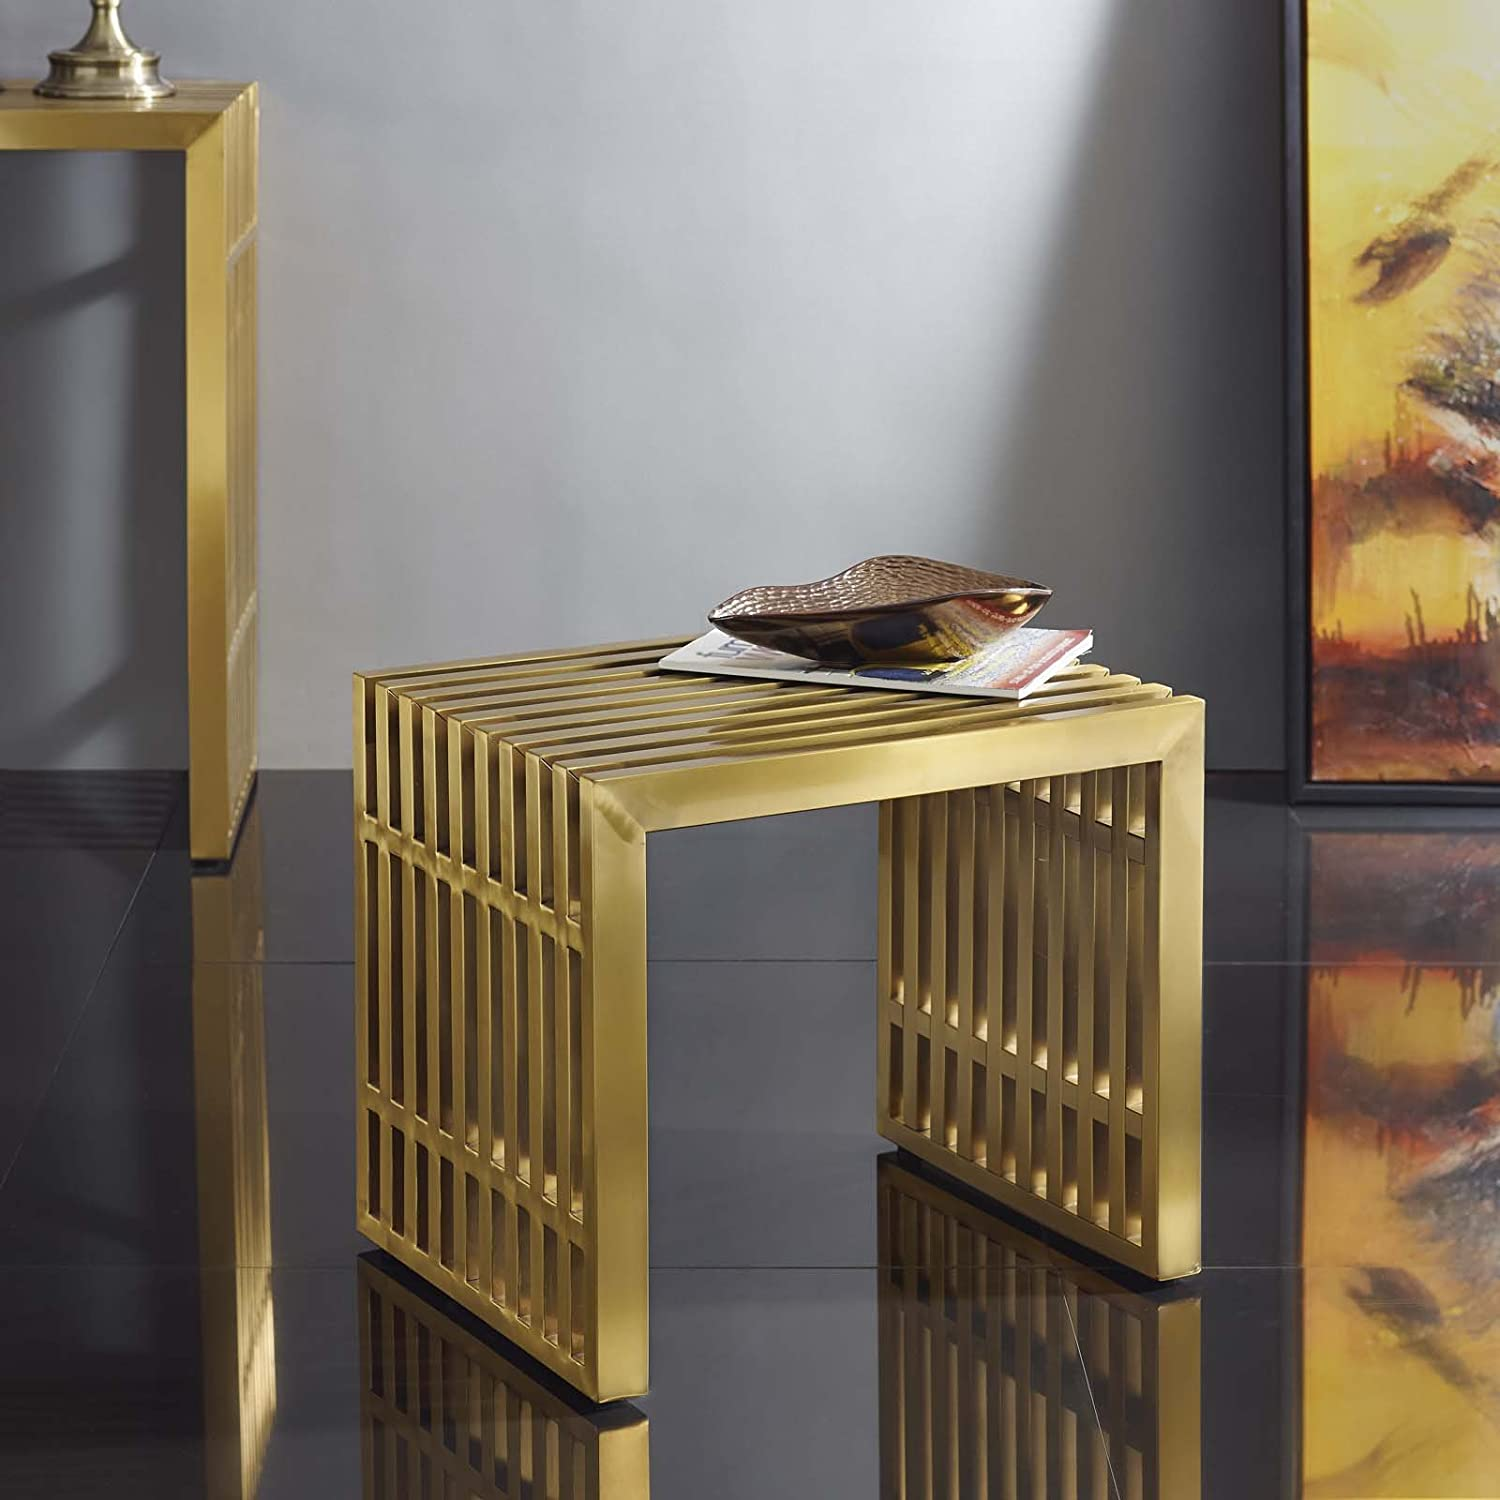 Modway EEI-2993-GLD Gridiron Small Stainless Steel Bench, Gold